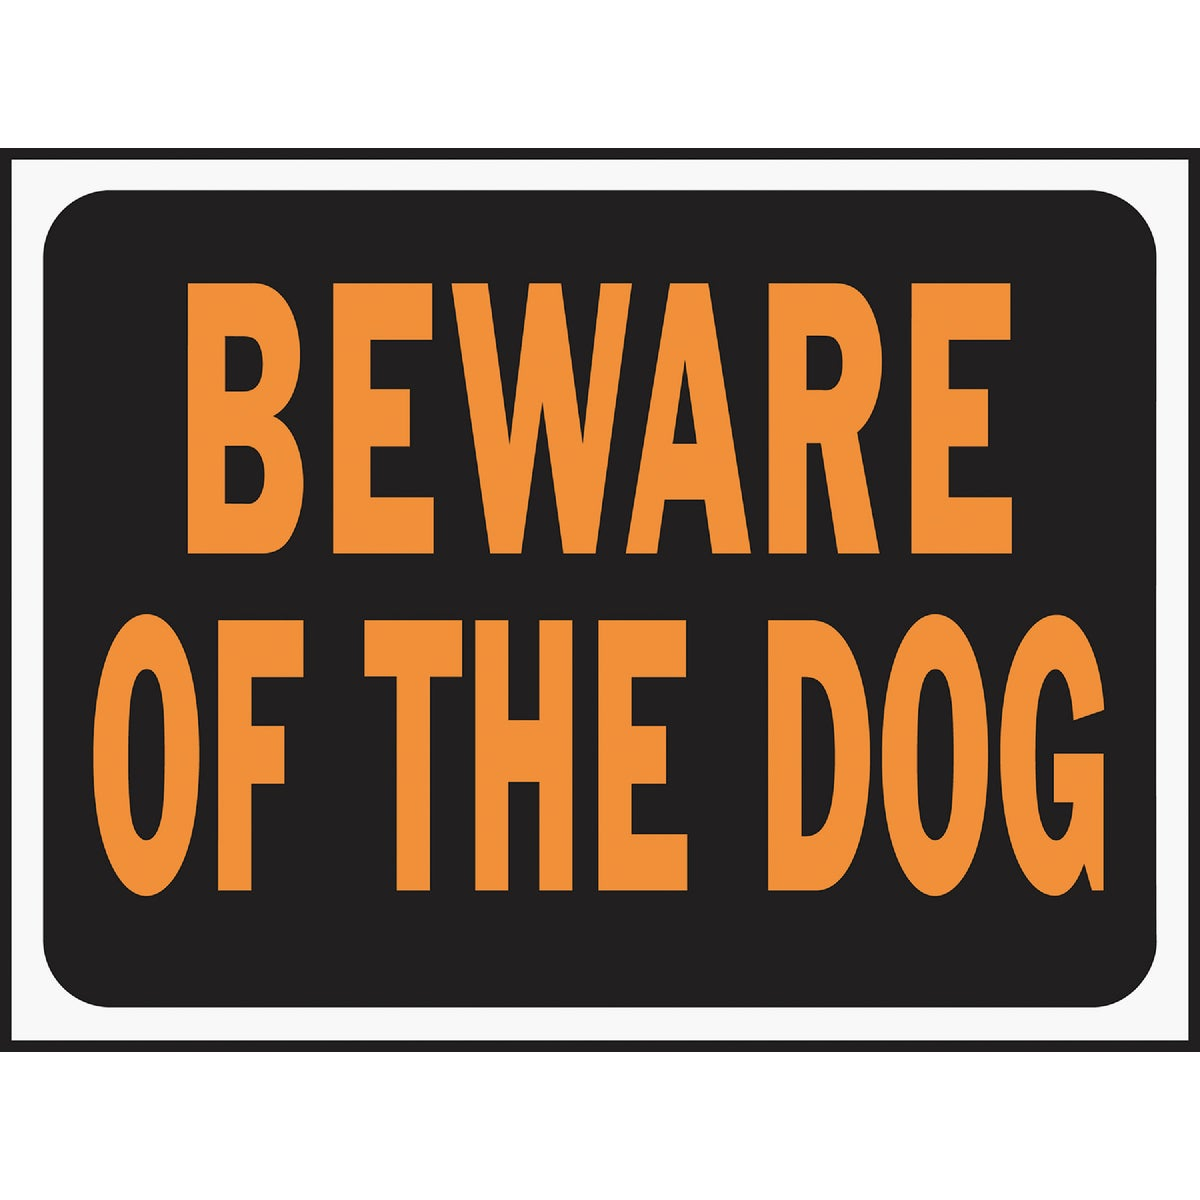 9X12 BEWARE OF DOG SIGN - 3002 by Hy Ko Prods Co